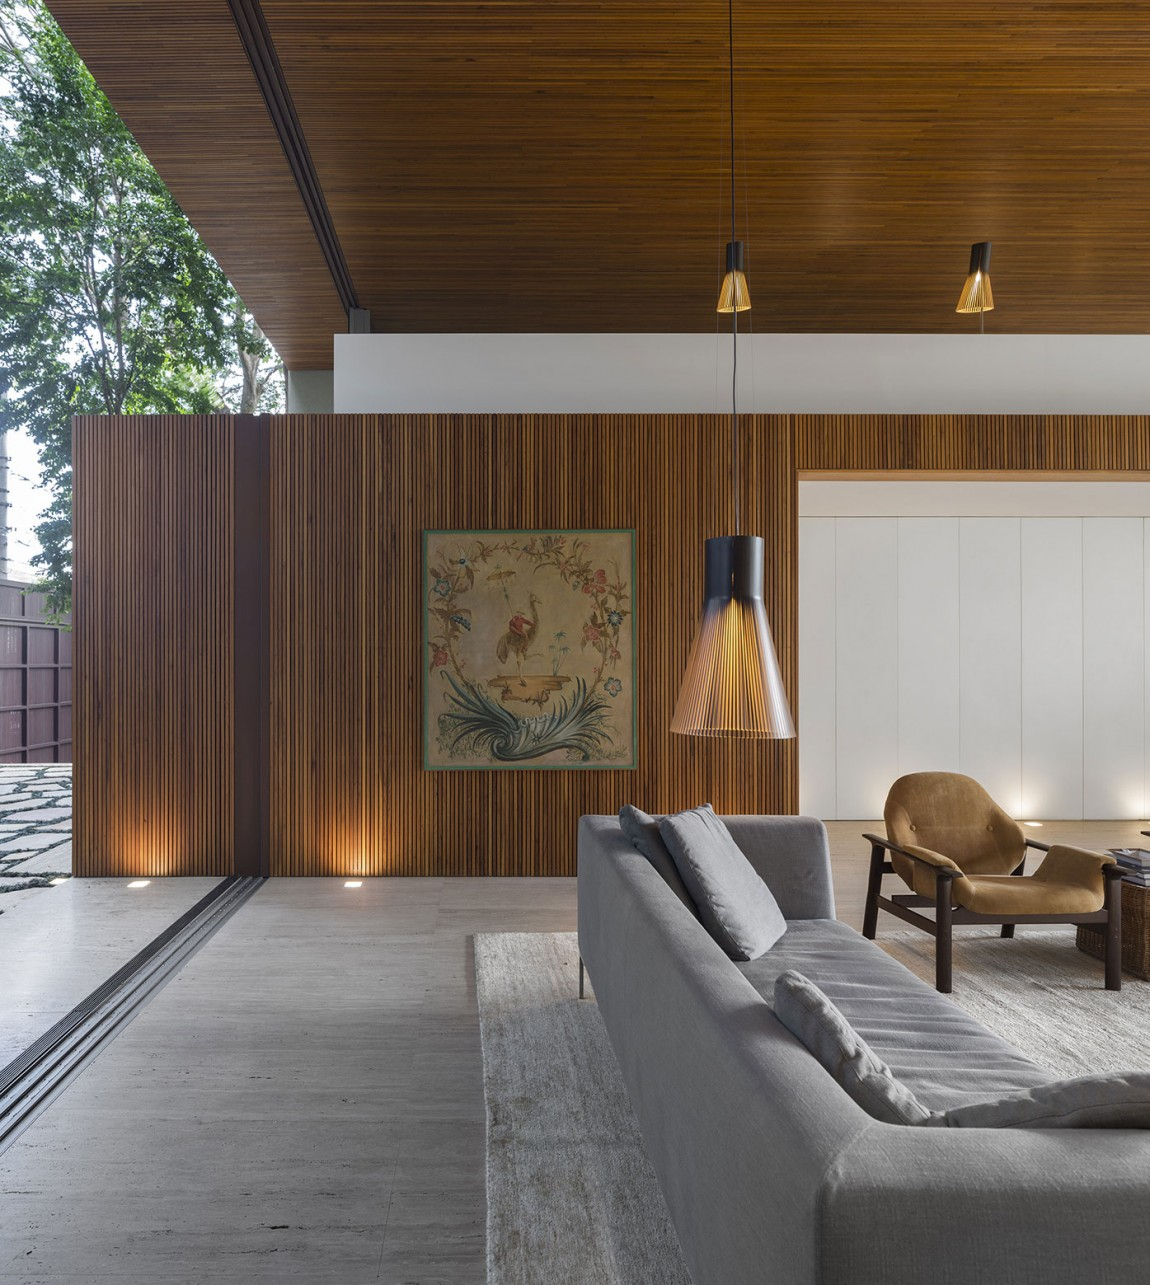 51 Modern Living Room Design From Talented Architects: Tetris House: A Creatively Organized Modern Brazilian Home